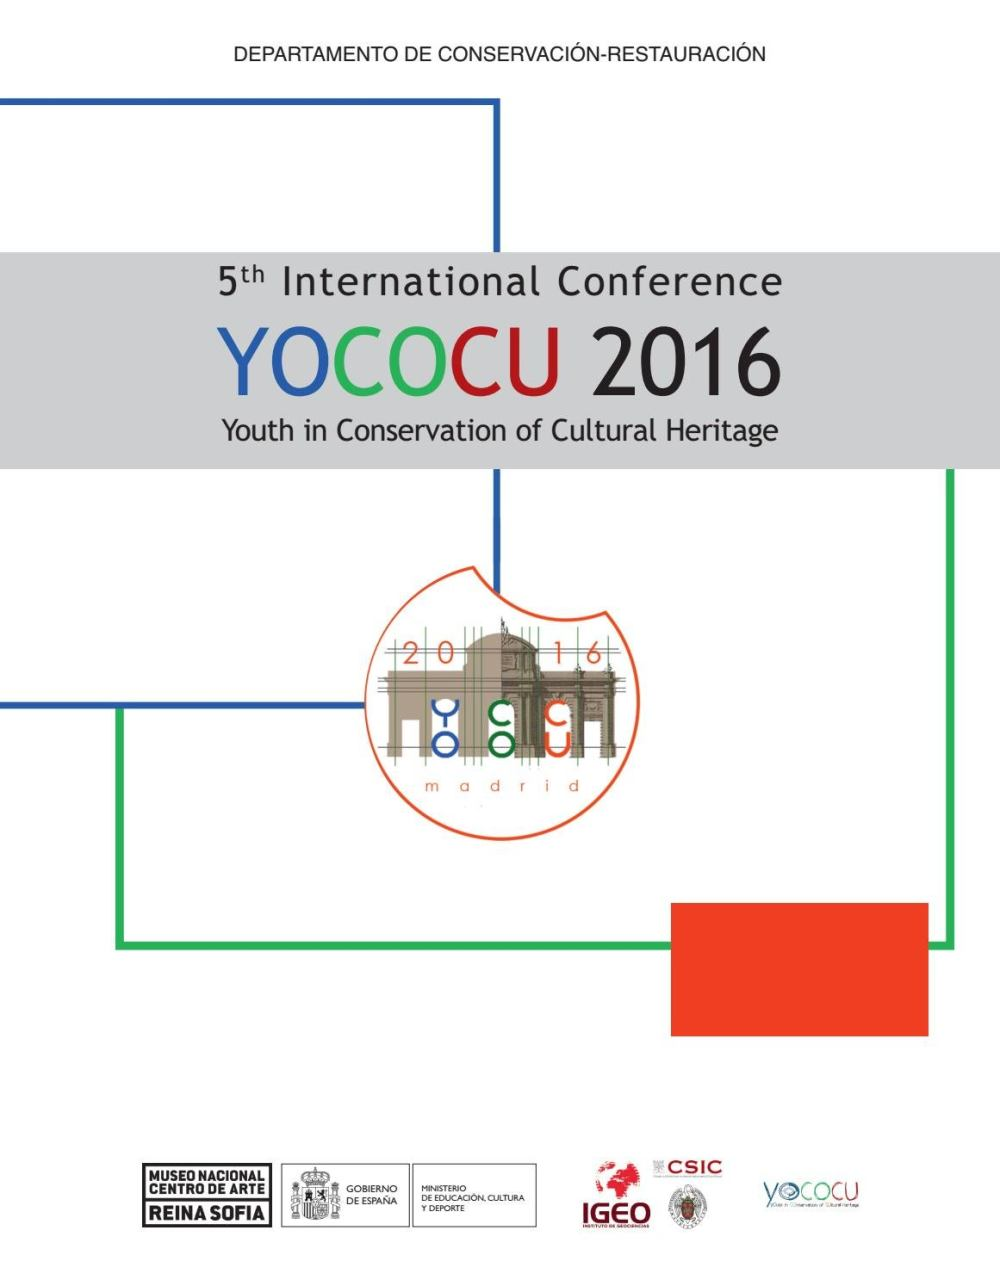 medium resolution of 5th international conference yococu 2016 youth in conservation of cultural heritage by museo reina sof a issuu